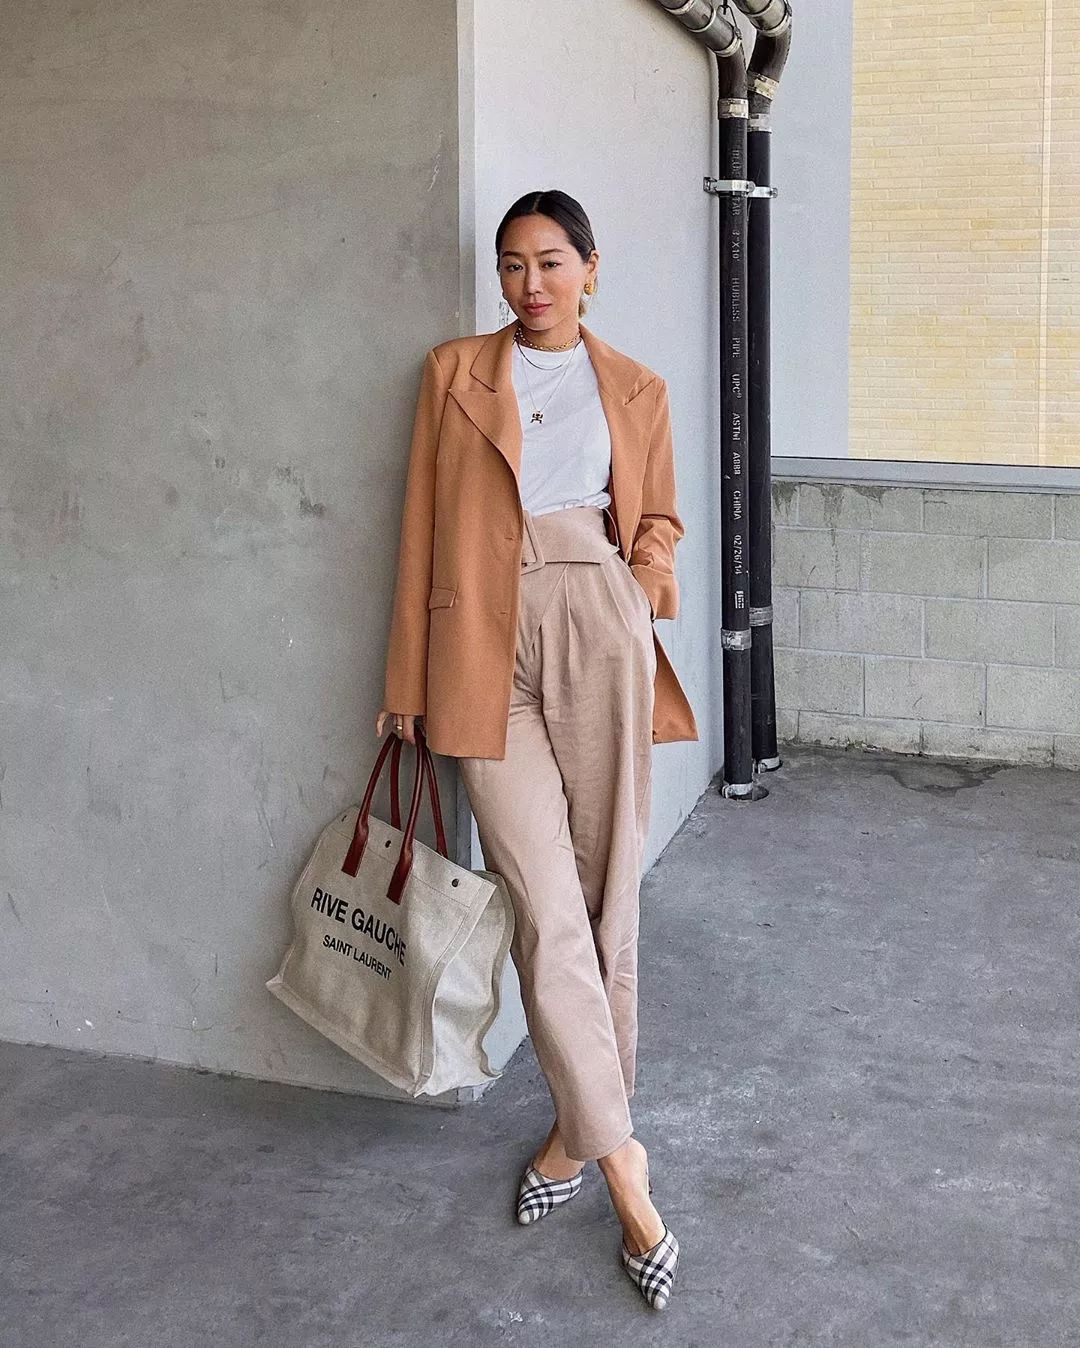 Fashion Blooger Aimee Song